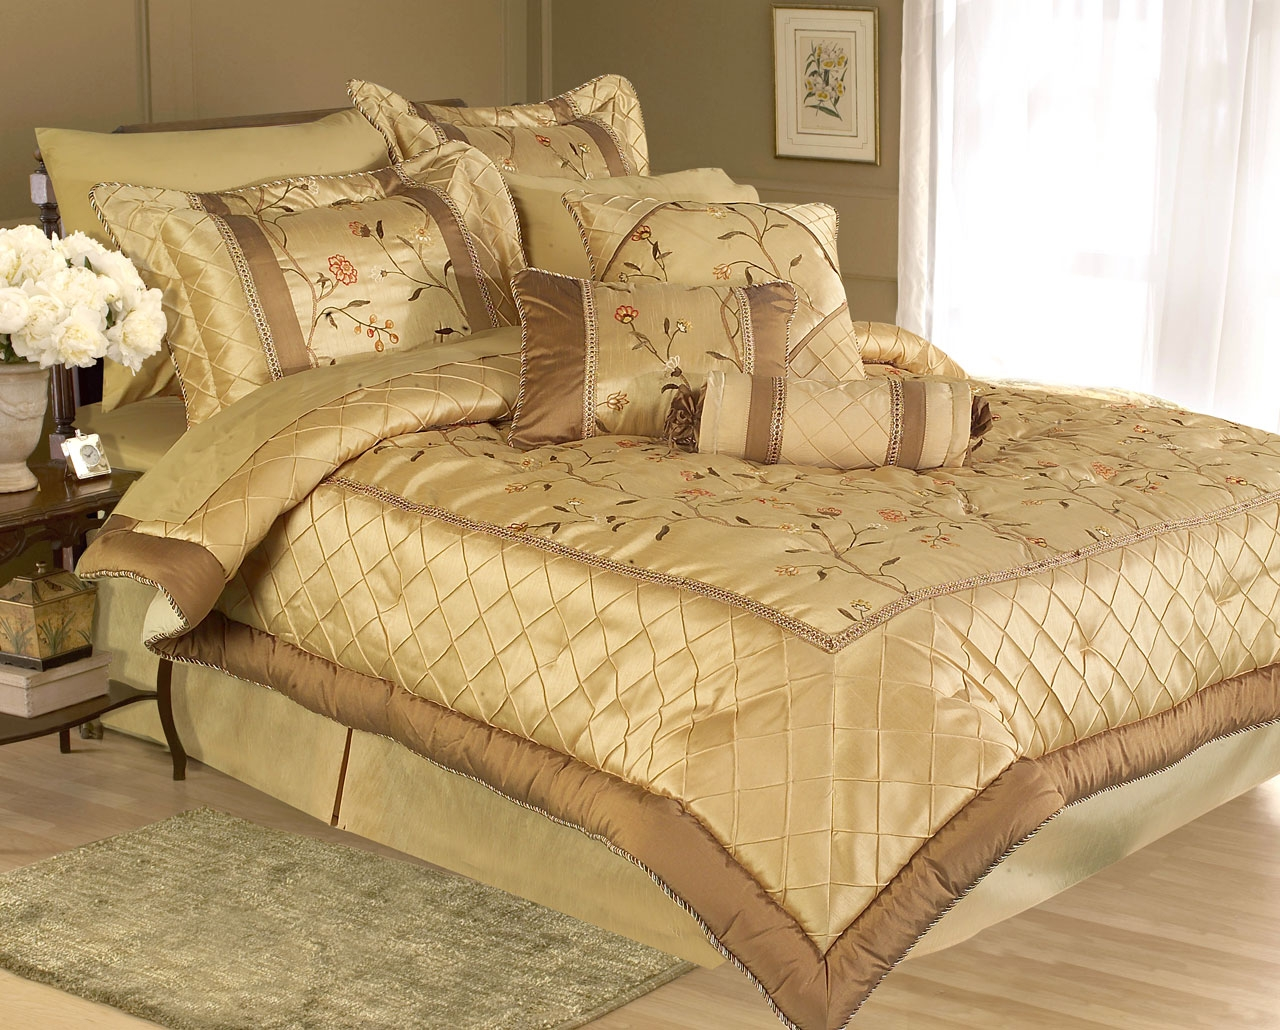 Queen Bedspread Clearance | Comforters and Bedspreads | Queen Bedspreads